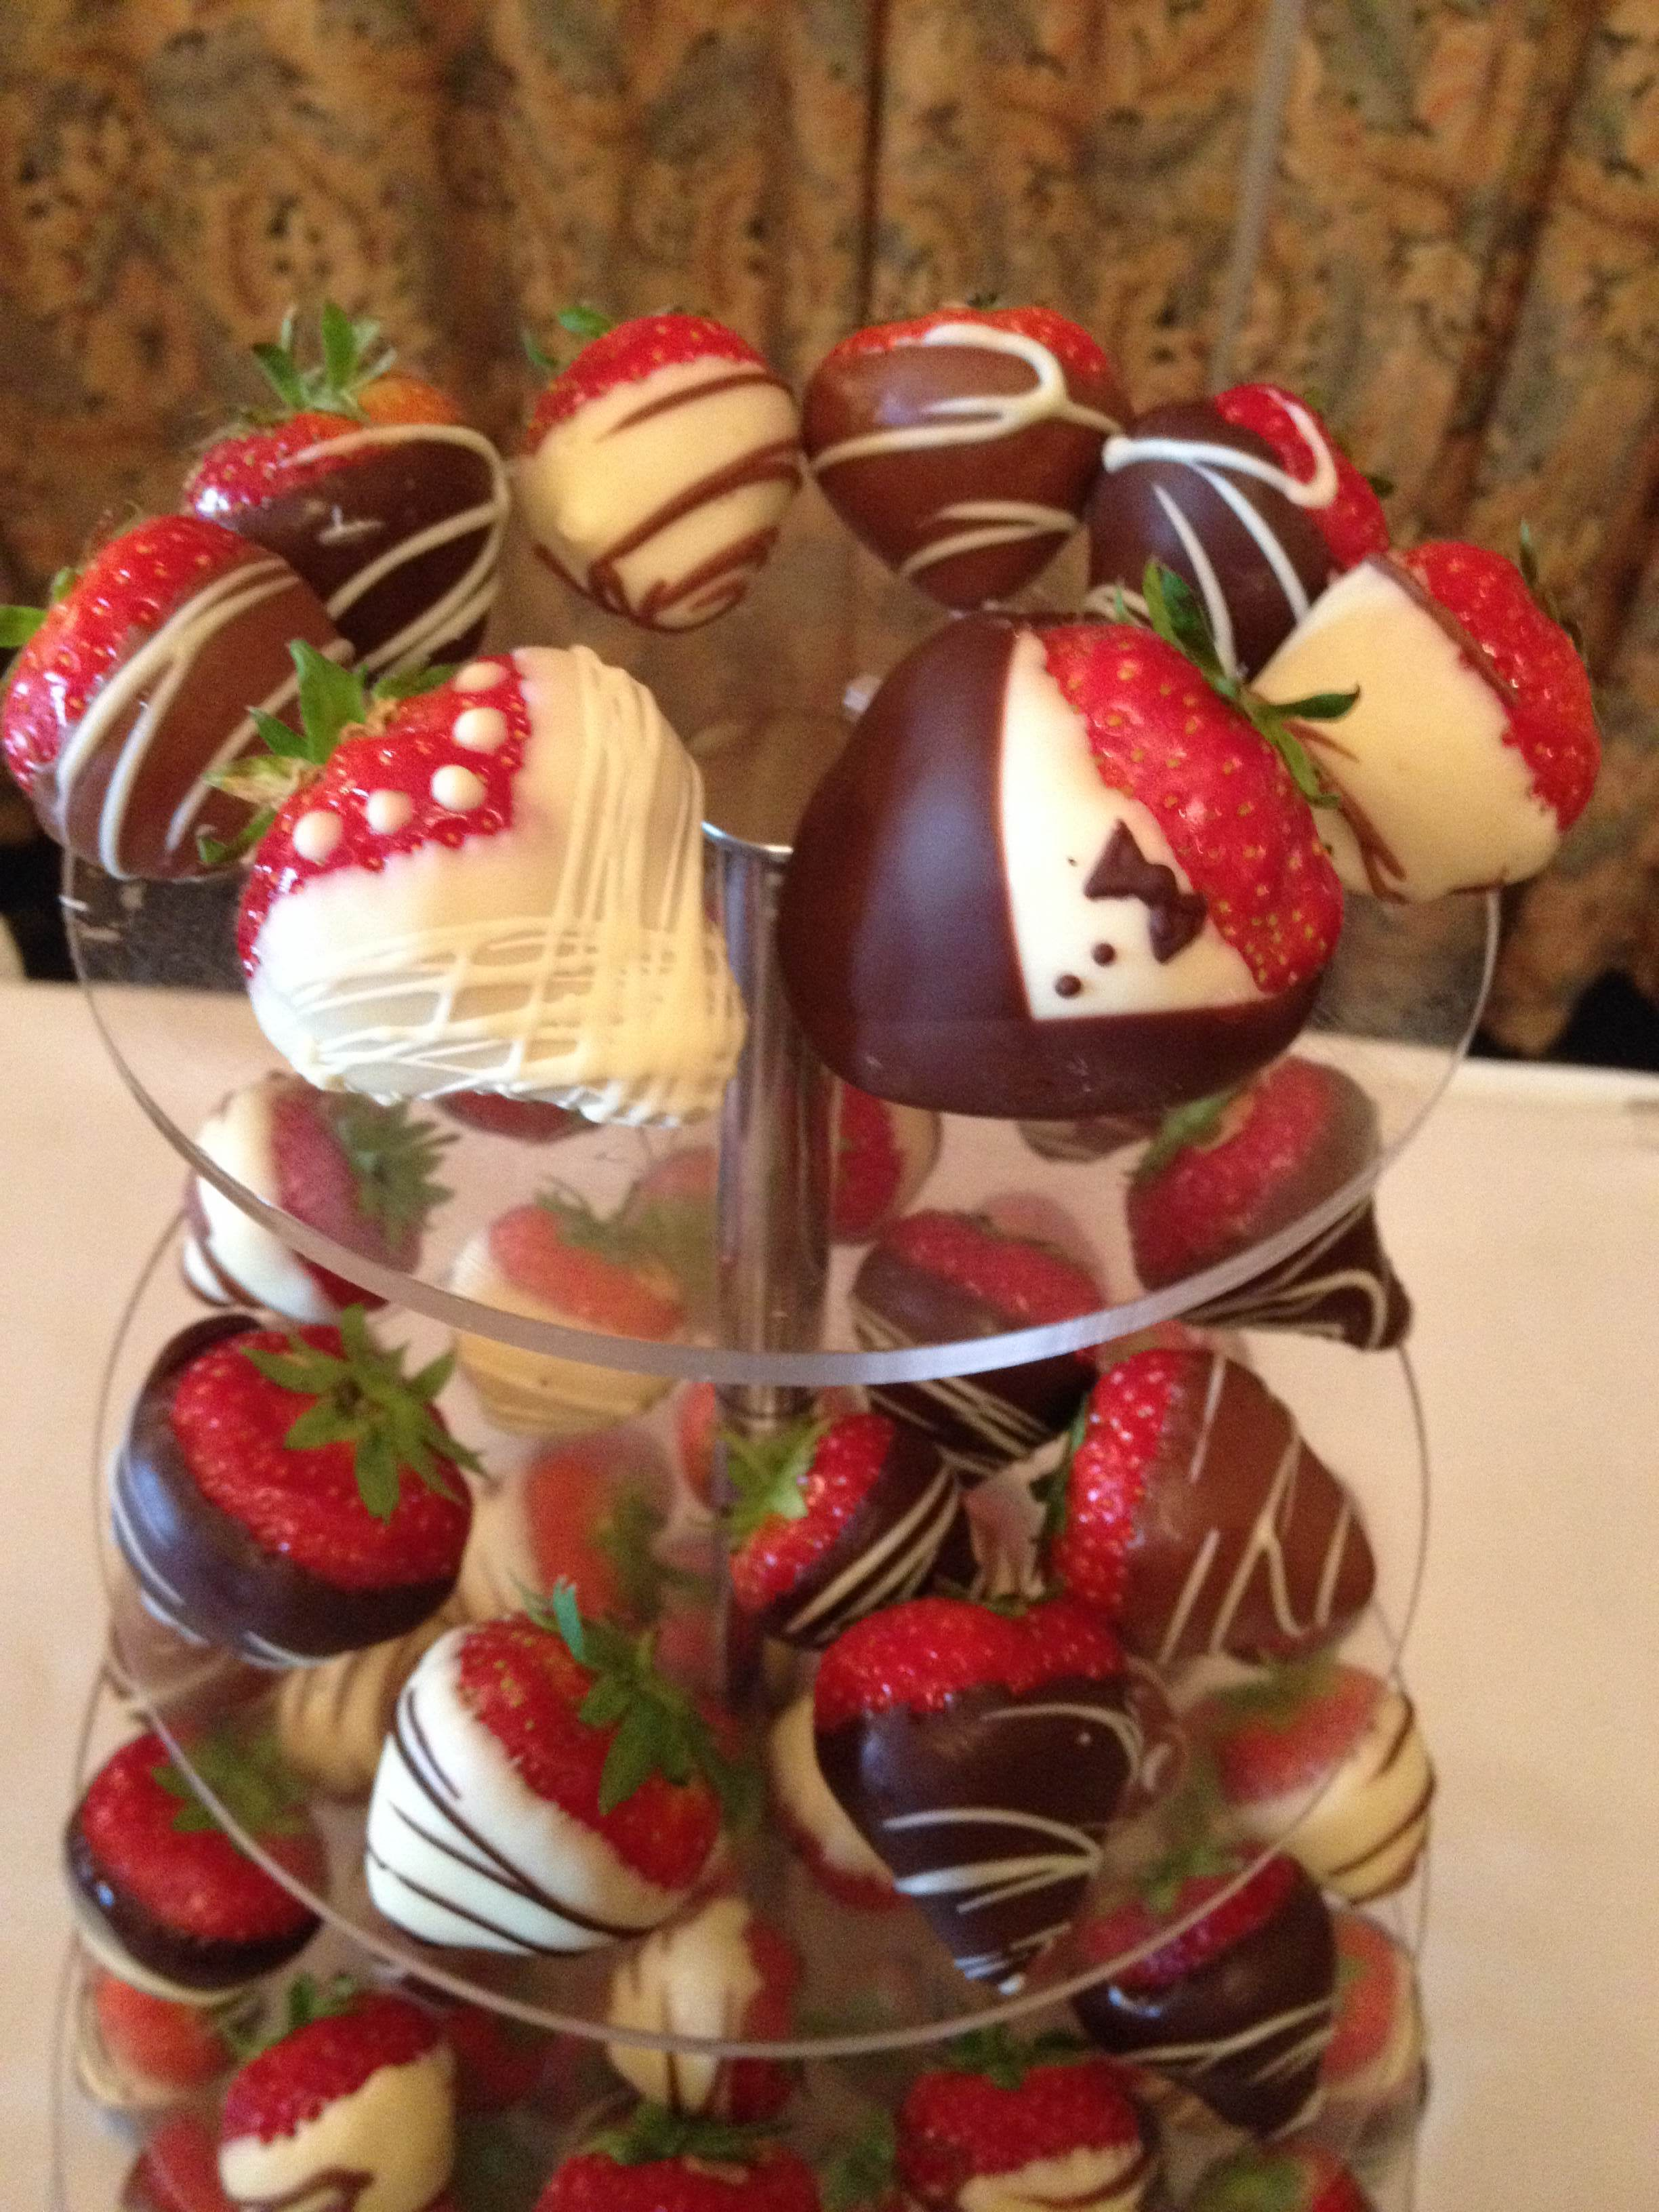 Strawberry Towers by Sweetylicious.JPG